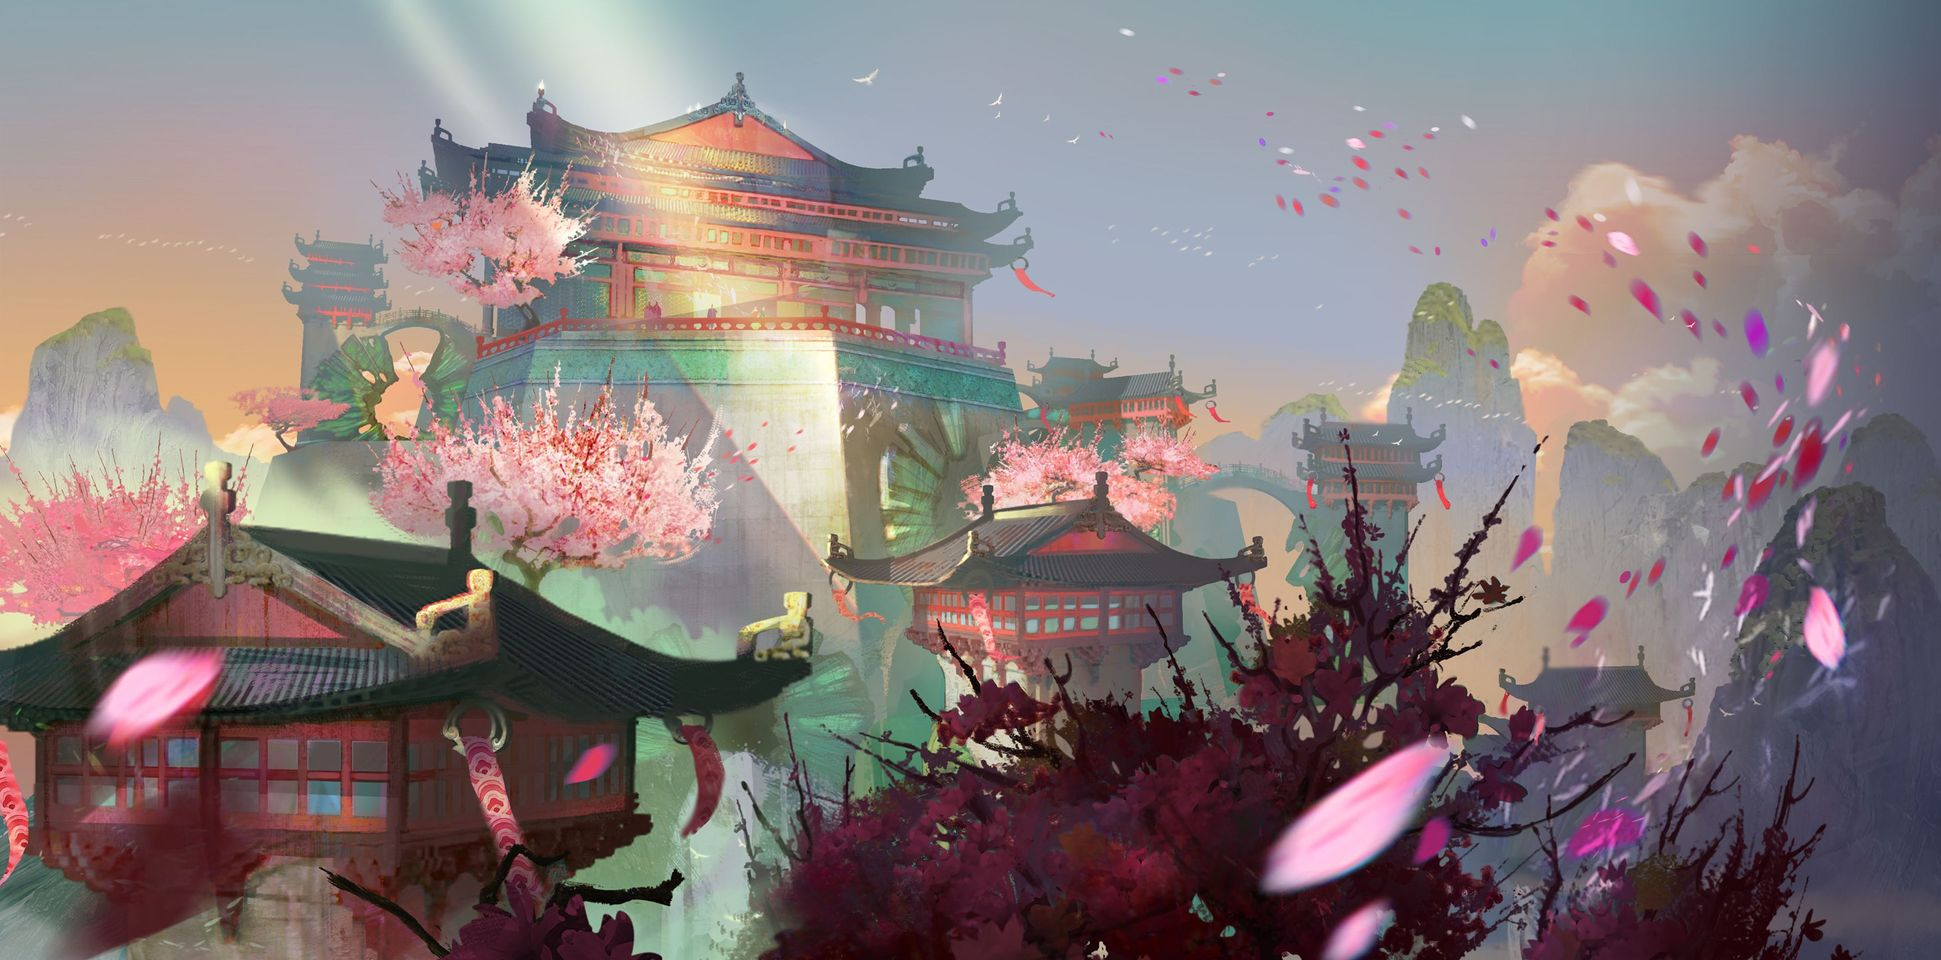 Guild Wars 2: End of Dragons Whisks Players Away to Mysterious Land of Cantha With New Expansion in February 2022 on Windows PC